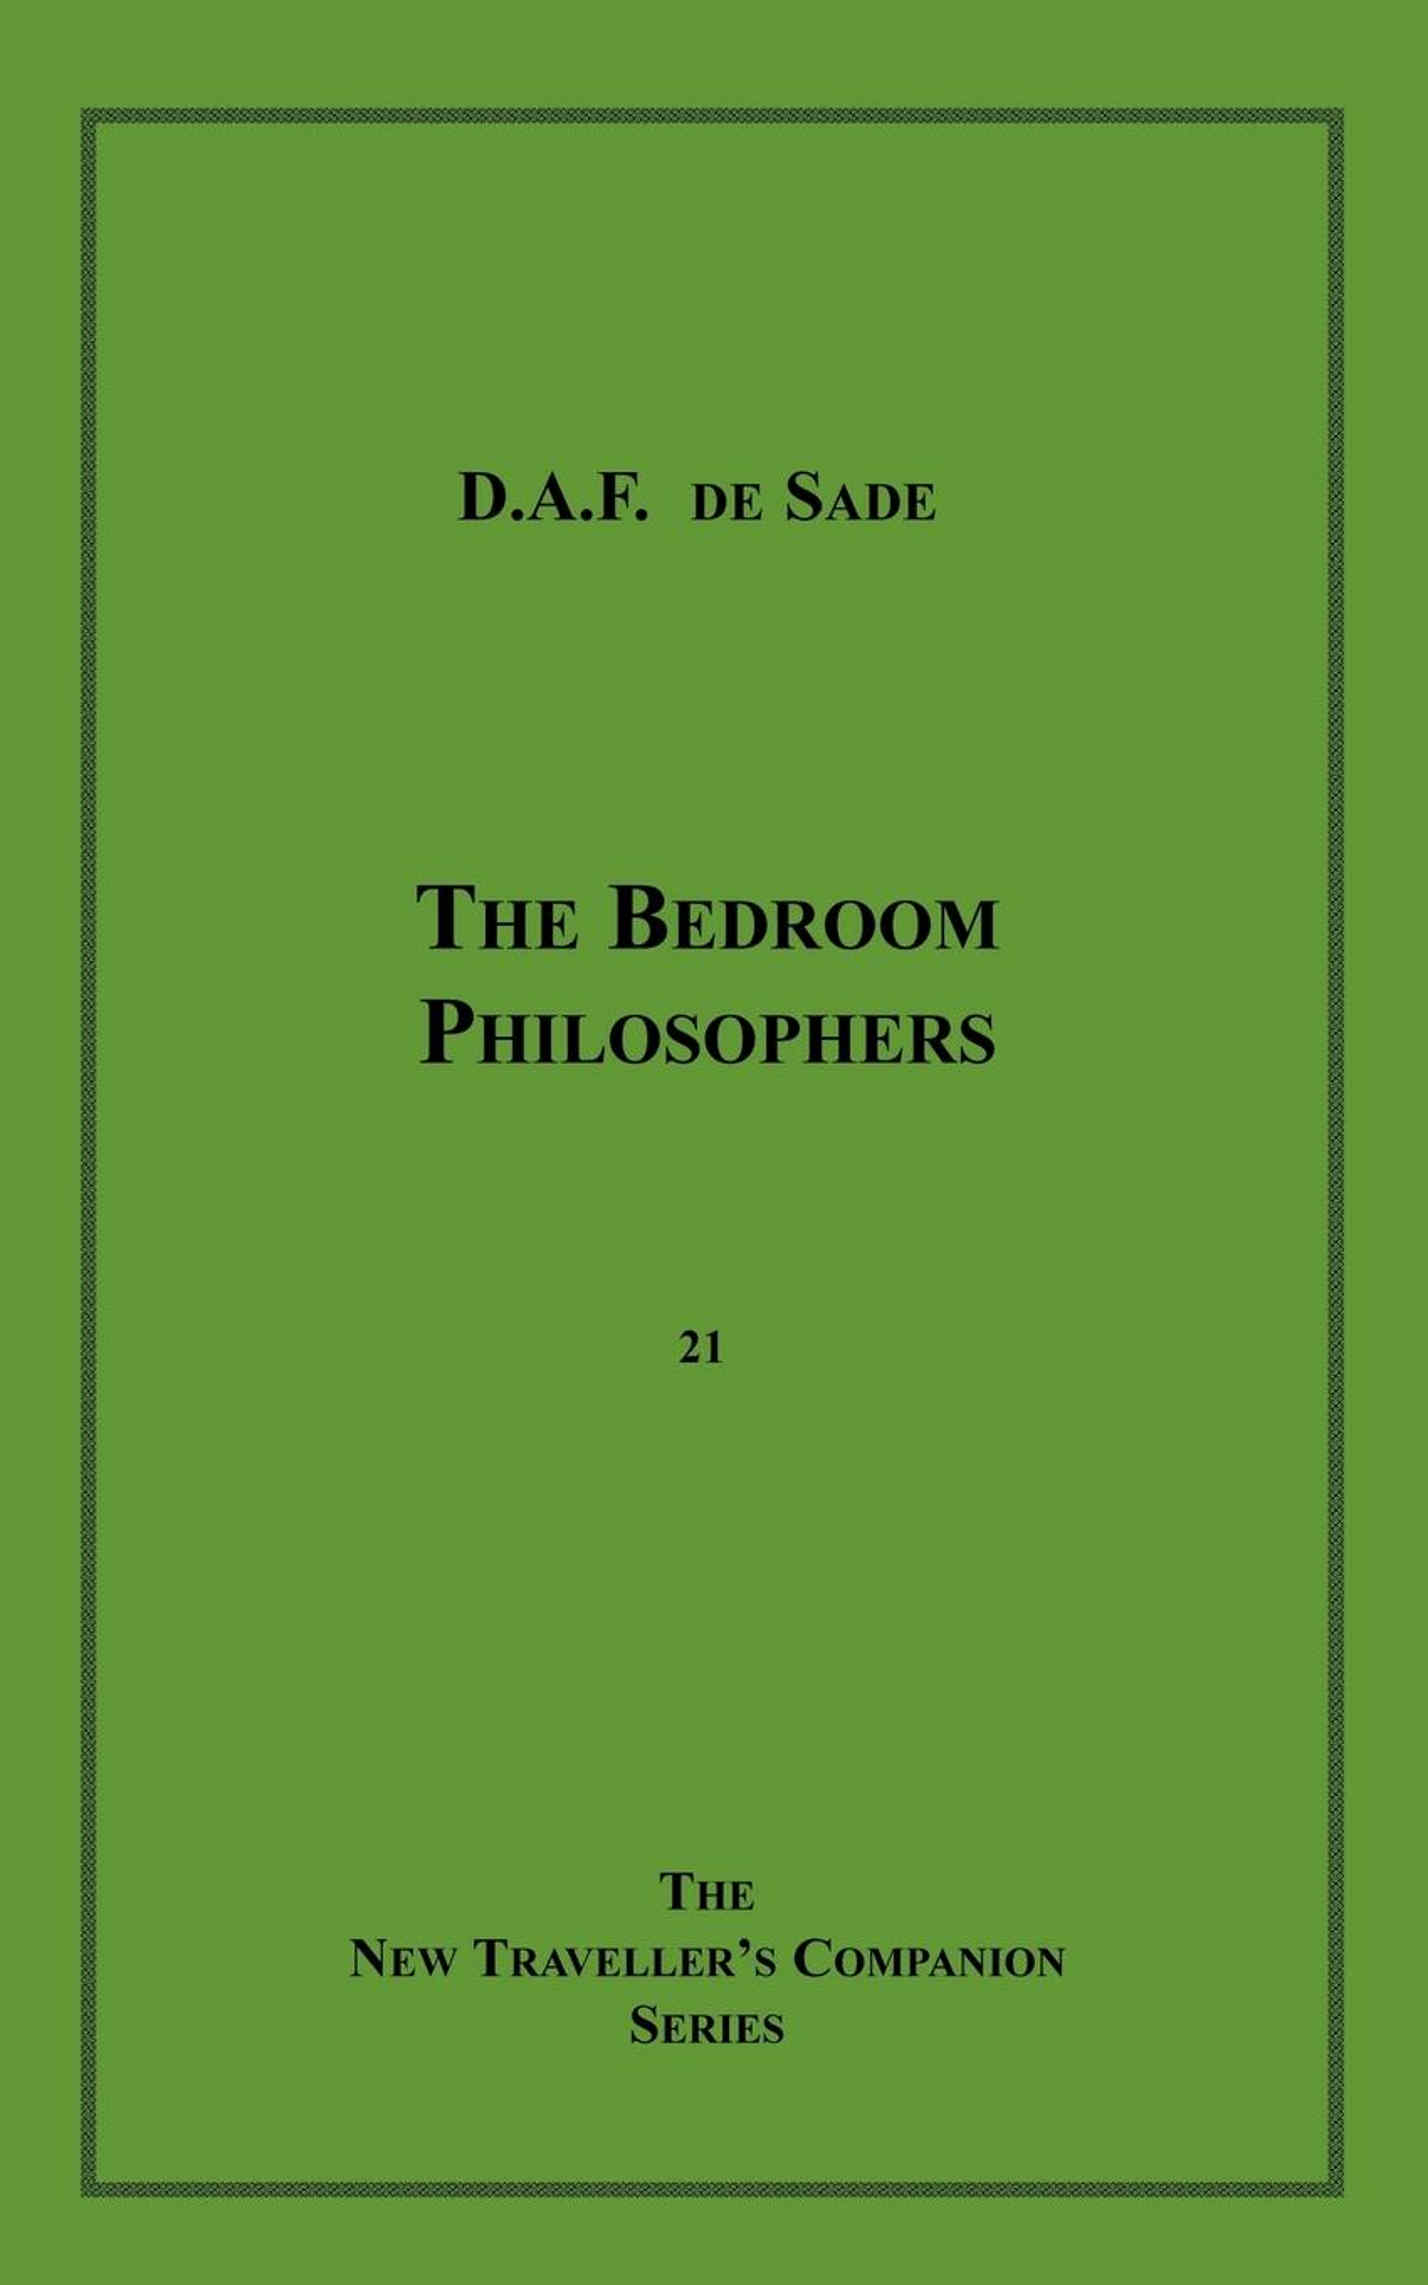 The Bedroom Philosophers